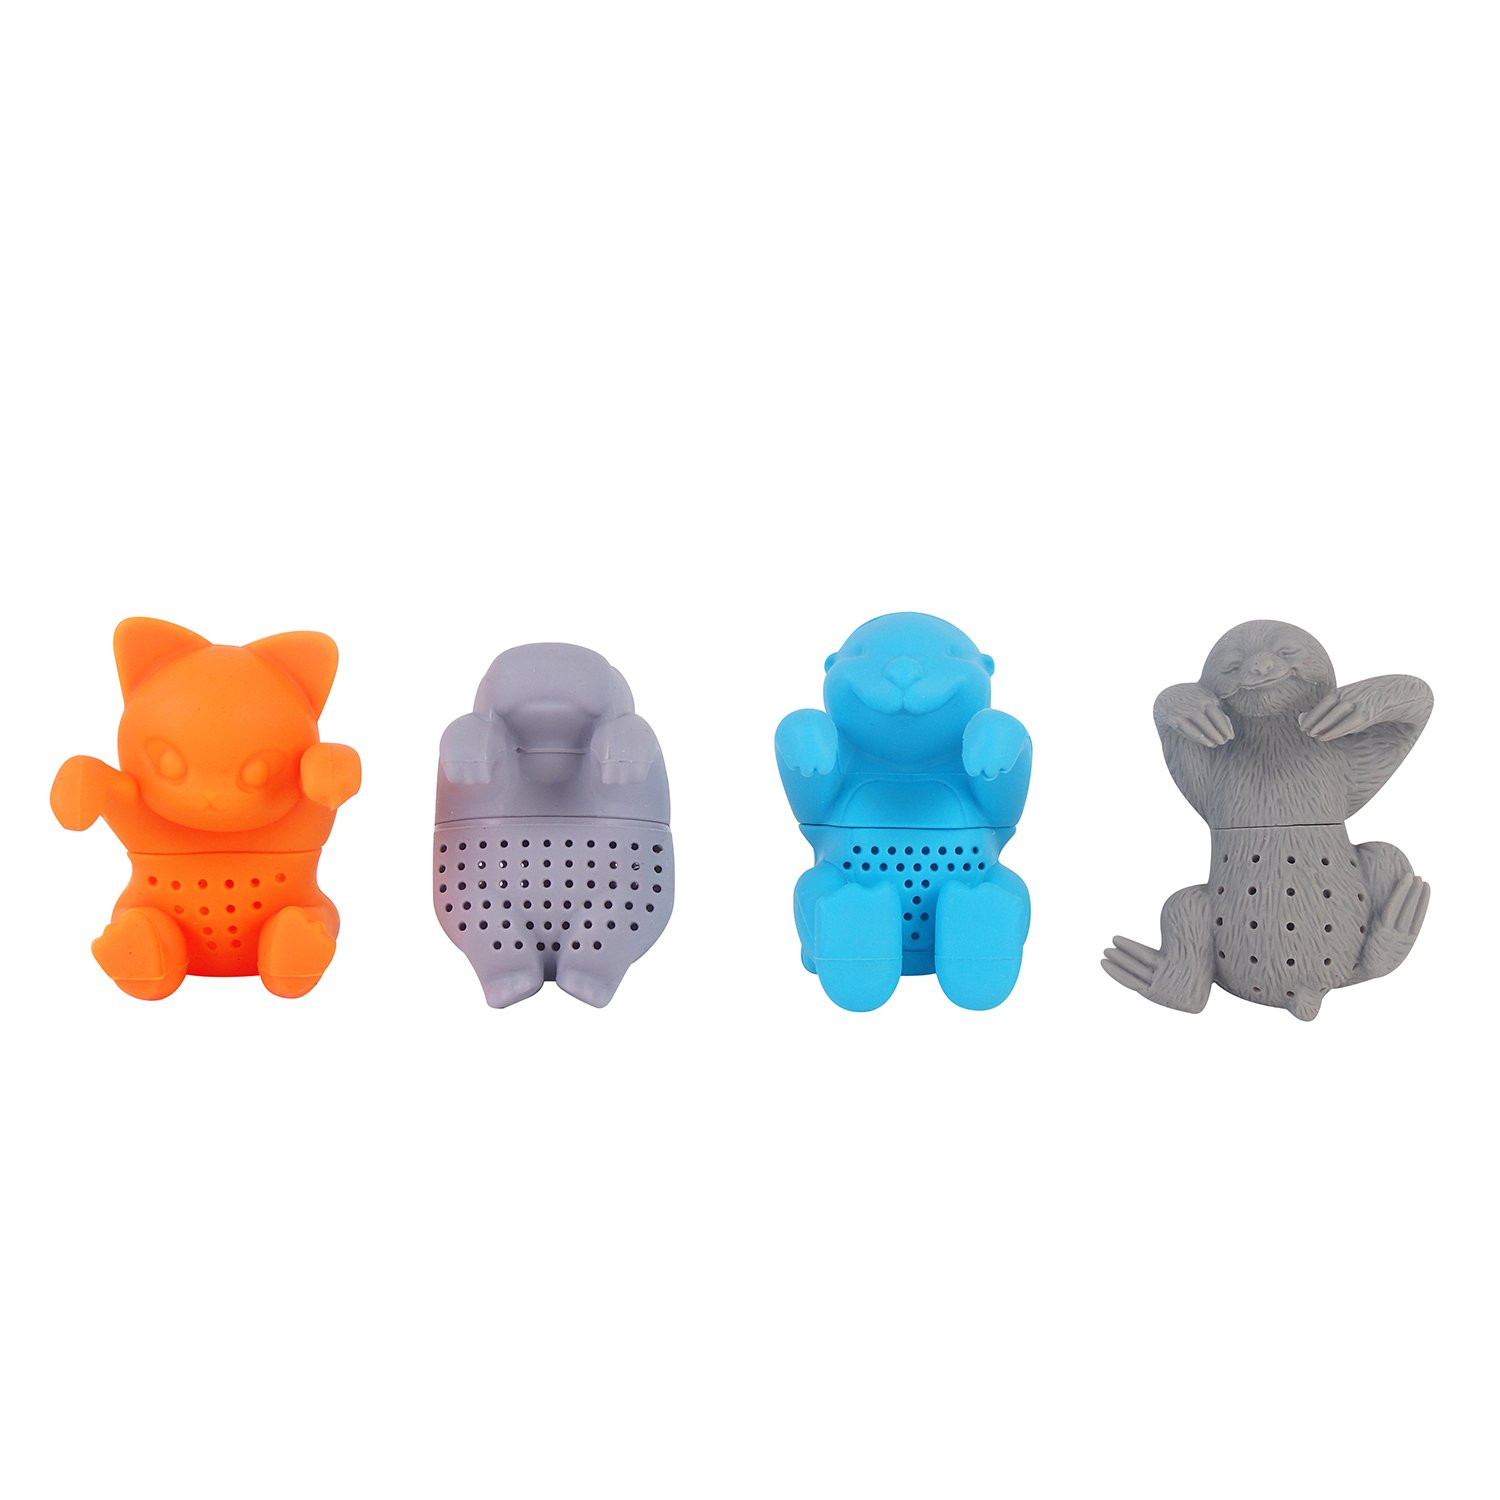 Tea infuser herbal tea filter strainer silicone Hippo Otter Sloth Cat shape tea infuser for loose tea leaves